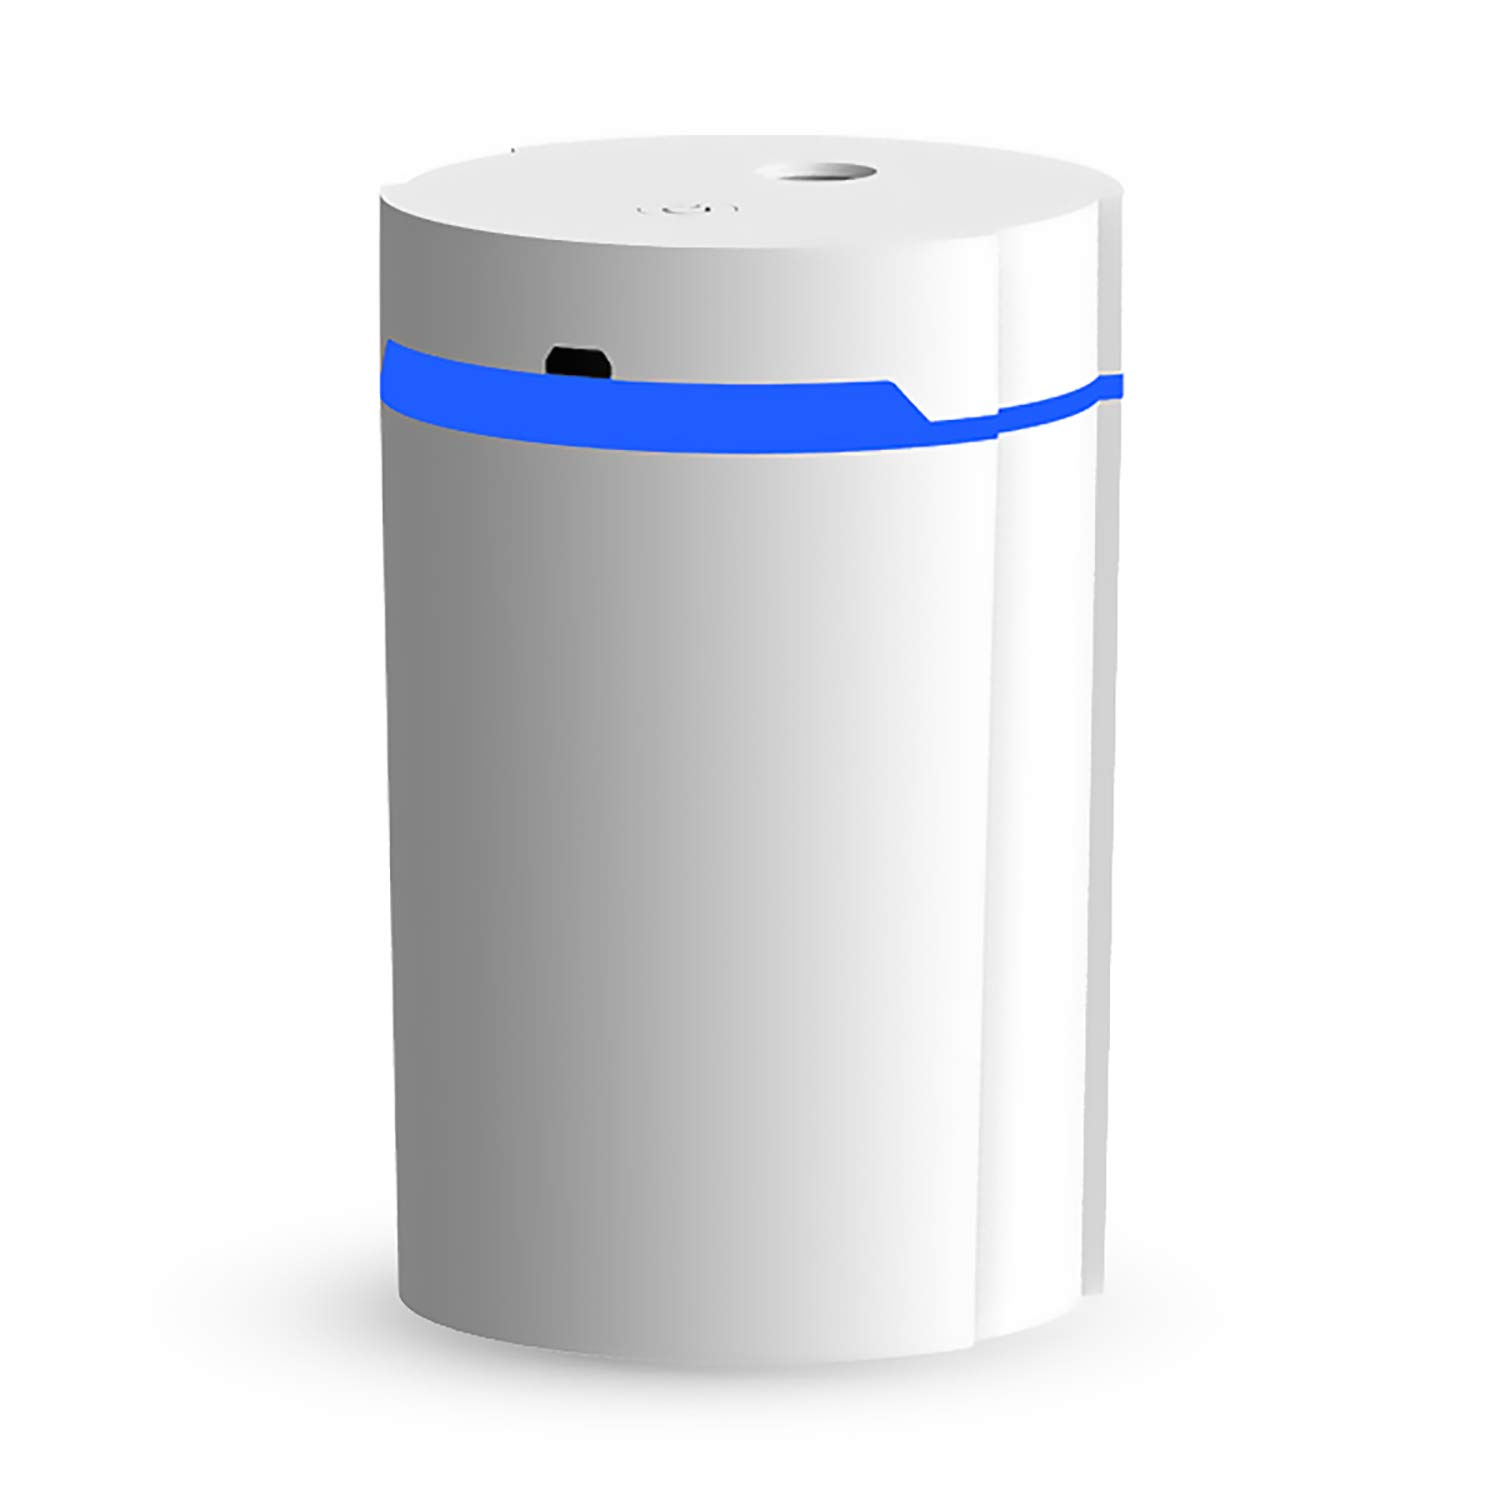 JYATUTU Humidifiers for bedroom, Home and Office, Car, Baby, Quiet and Small Ultrasonic Humidifier, Auto Shut Off